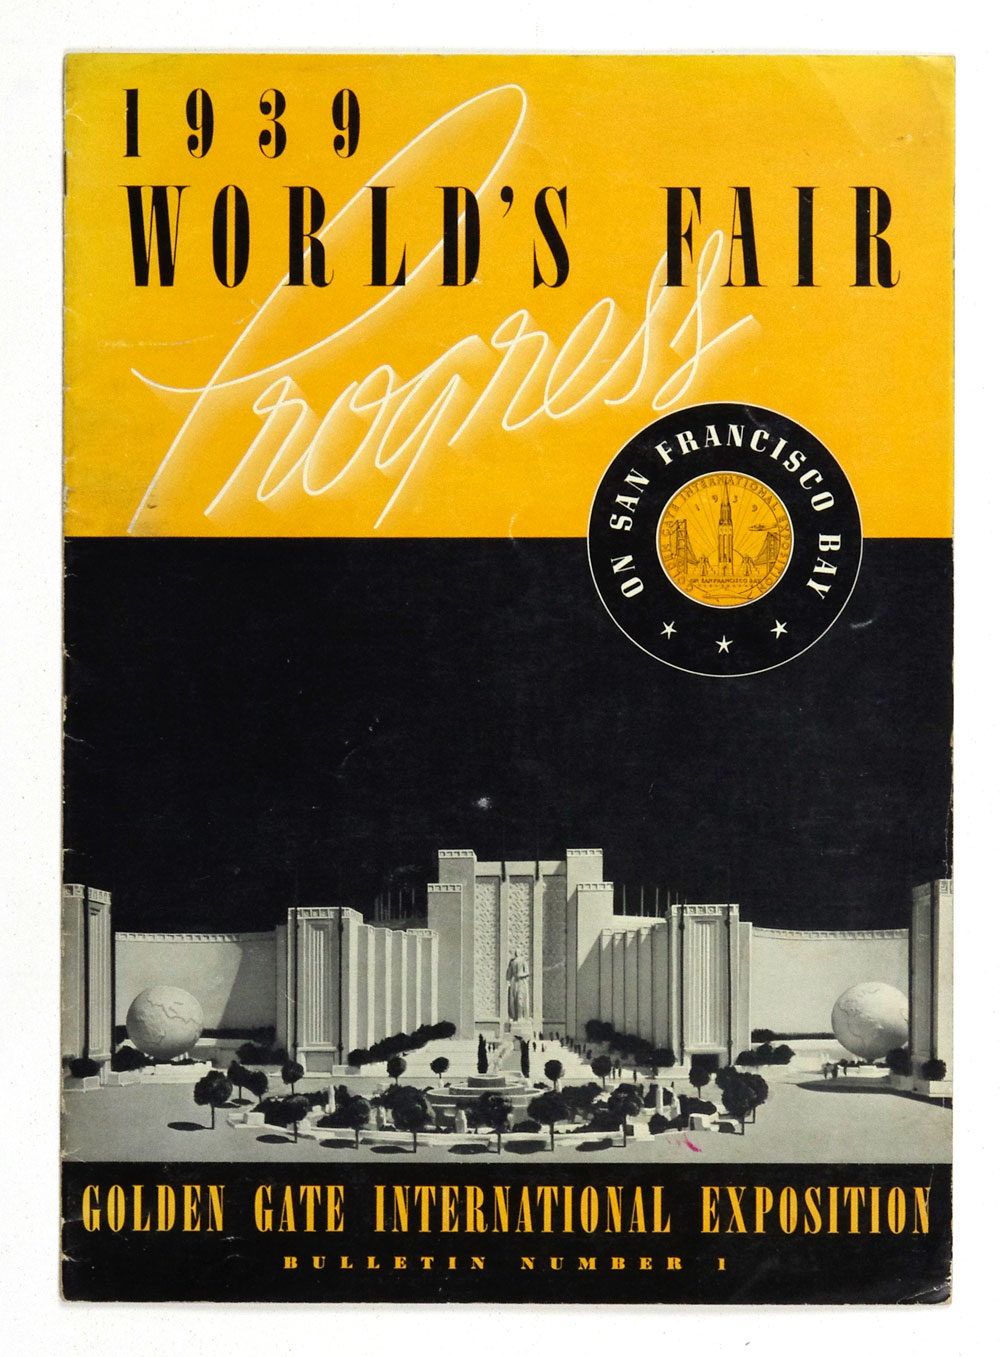 1939 World's Fair on San Francisco Bay Bulletin Number 1